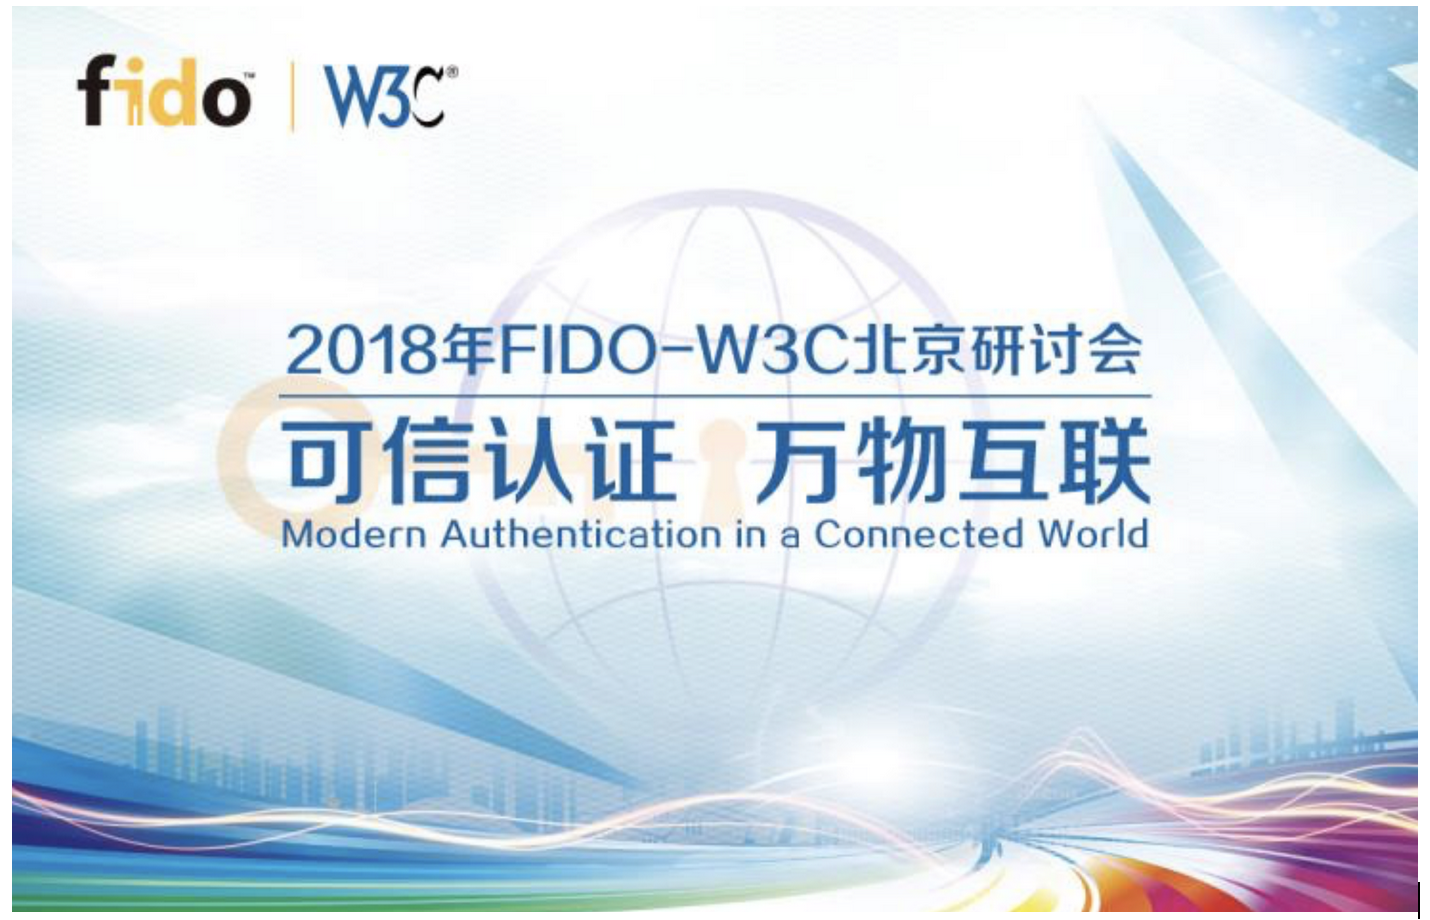 image of the fido-w3c co-event in Beijing